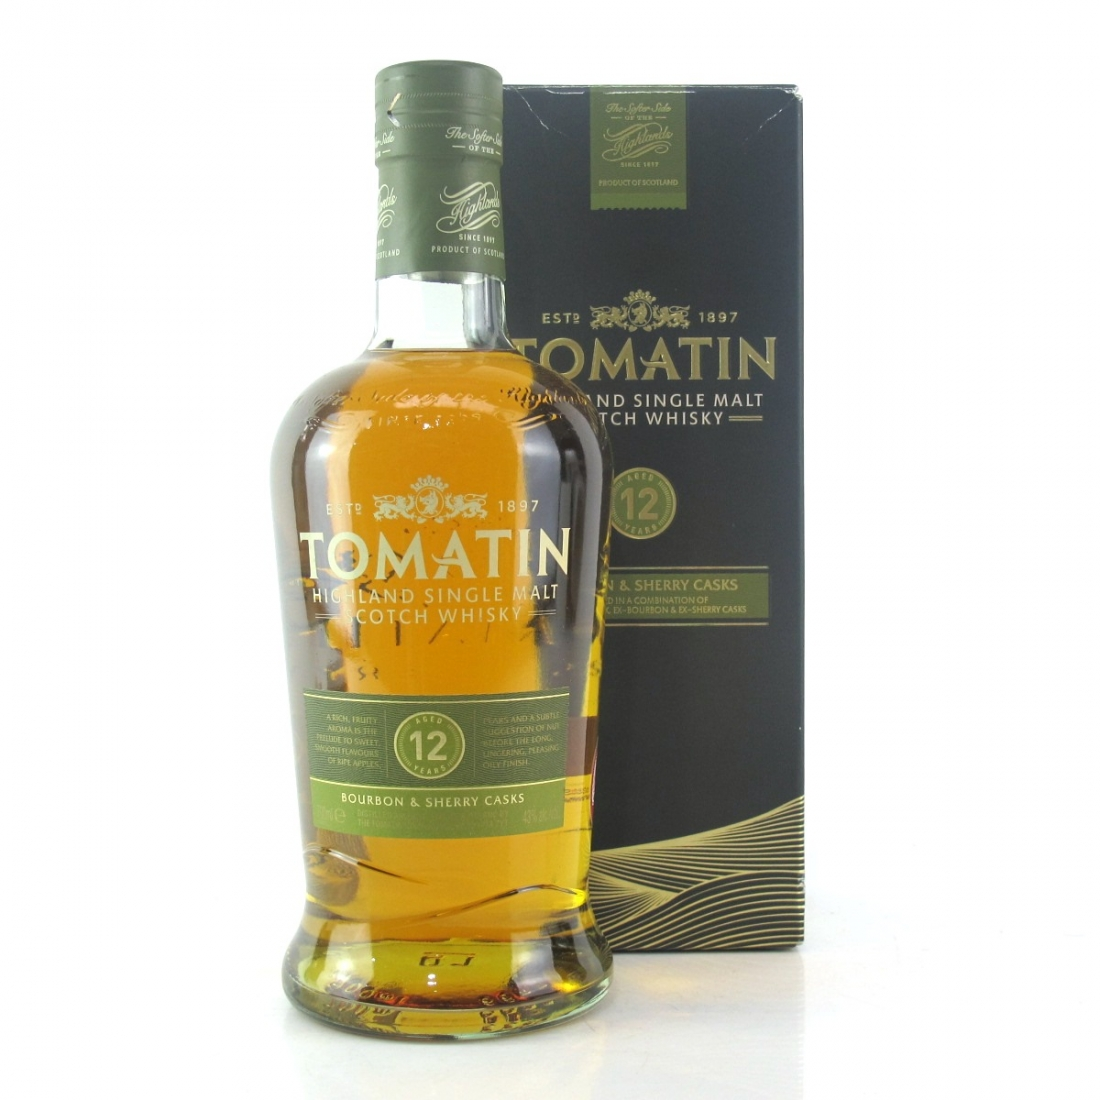 Tomatin 12 Year Old / Bourbon and Sherry Casks